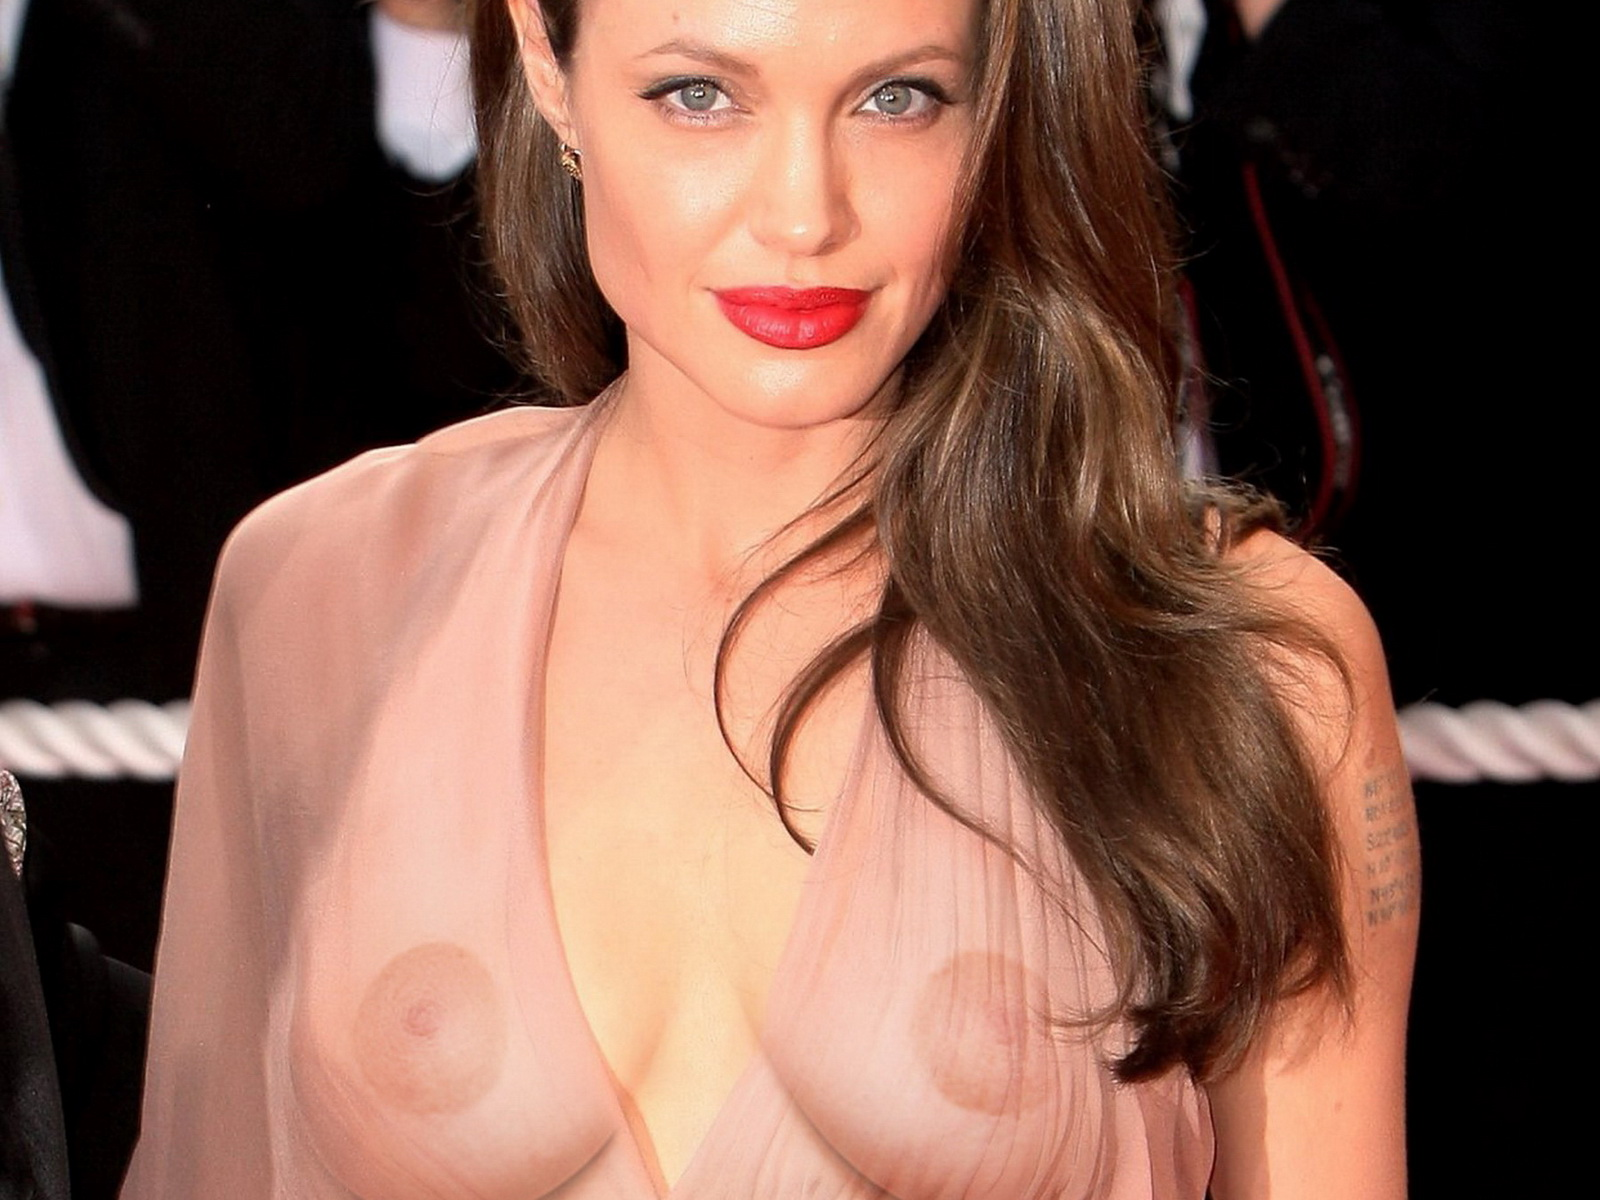 Angelina jolie big tits